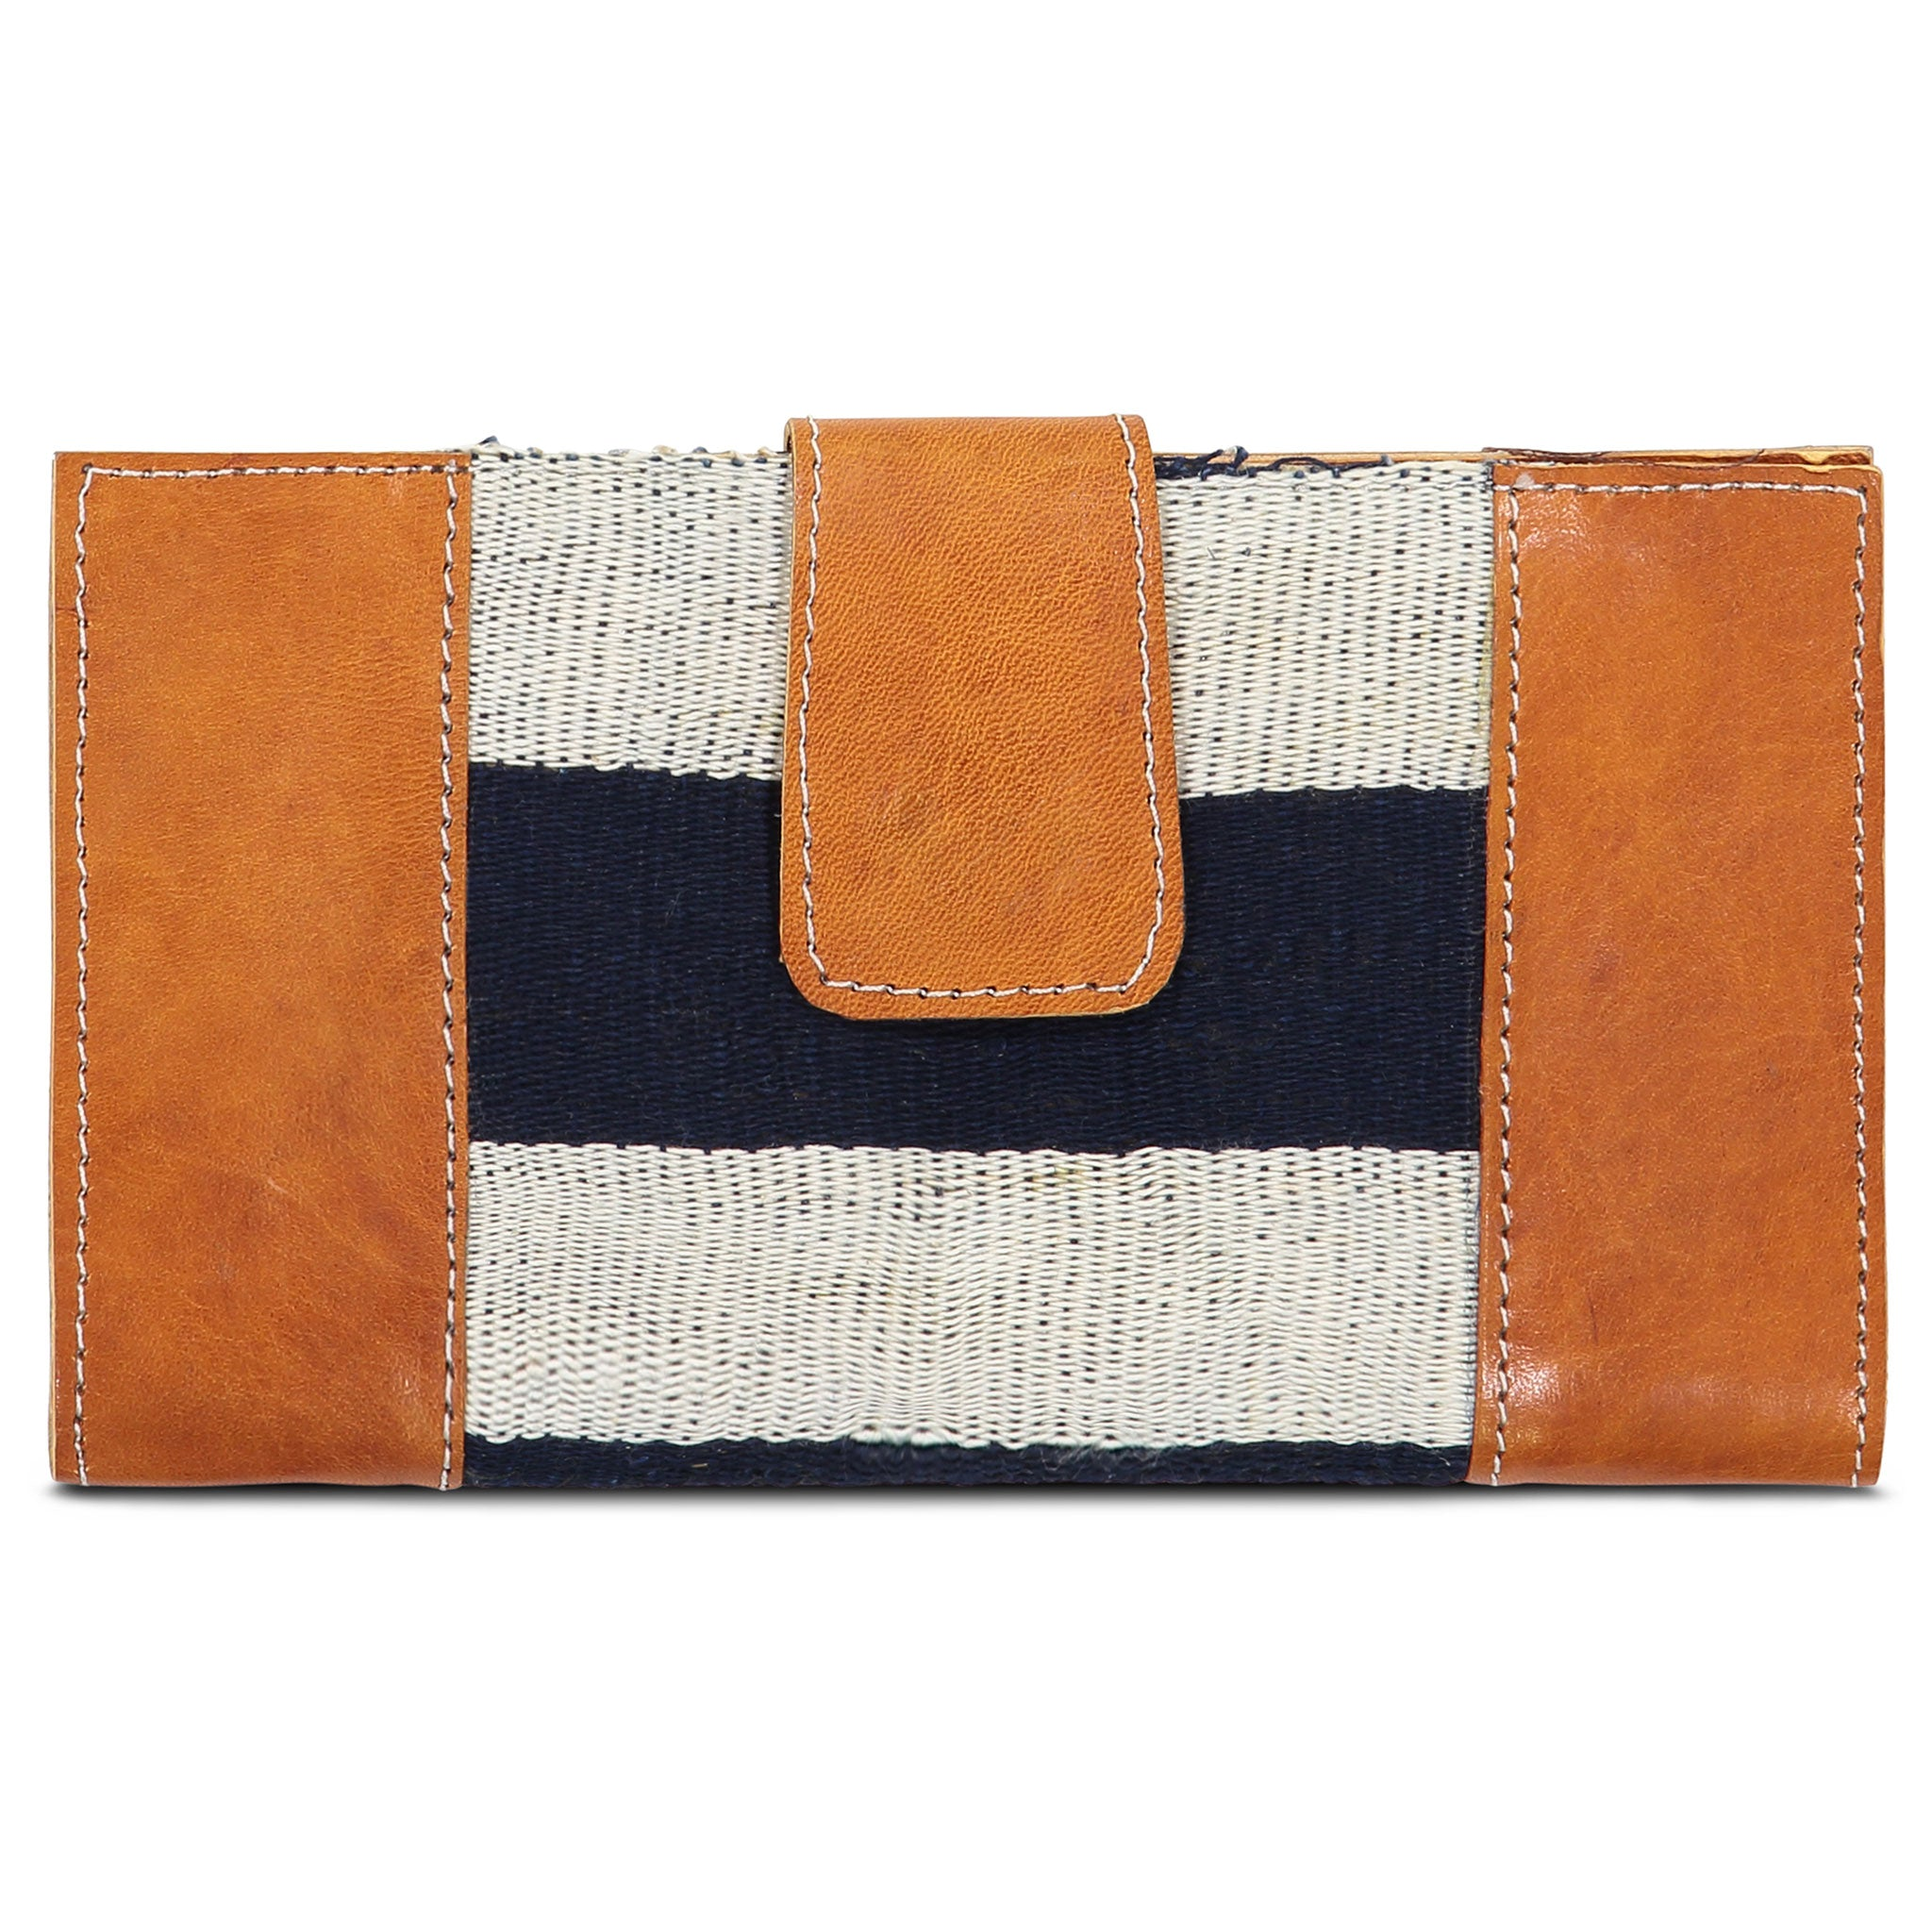 Country Cloth Wallet: Bold Indigo